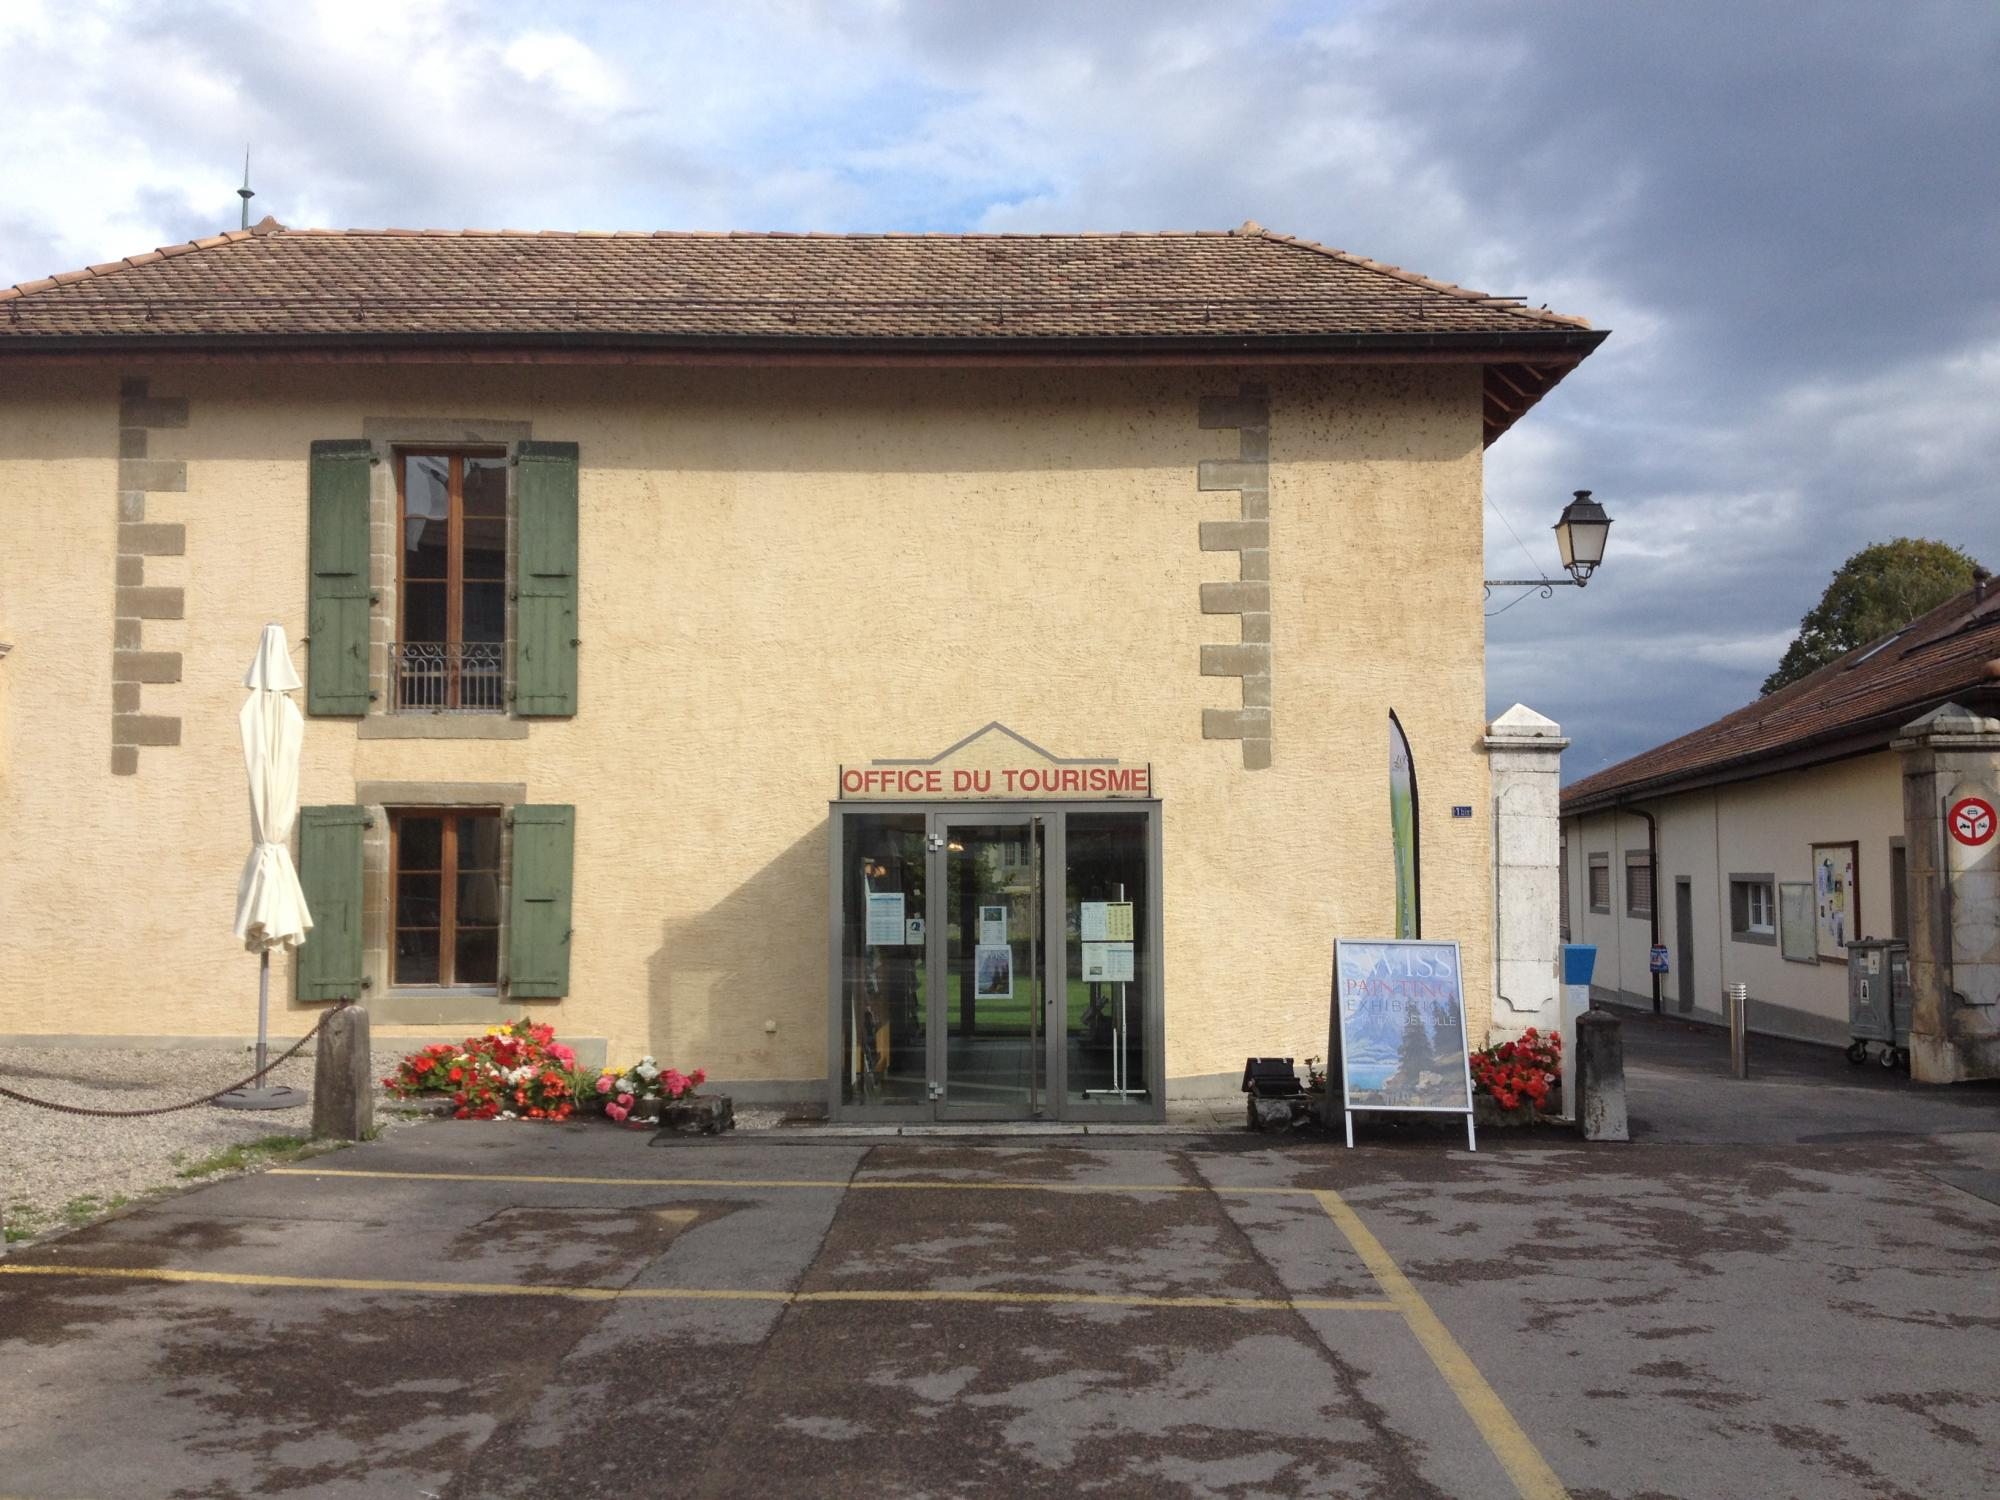 Office du Tourisme de Rolle